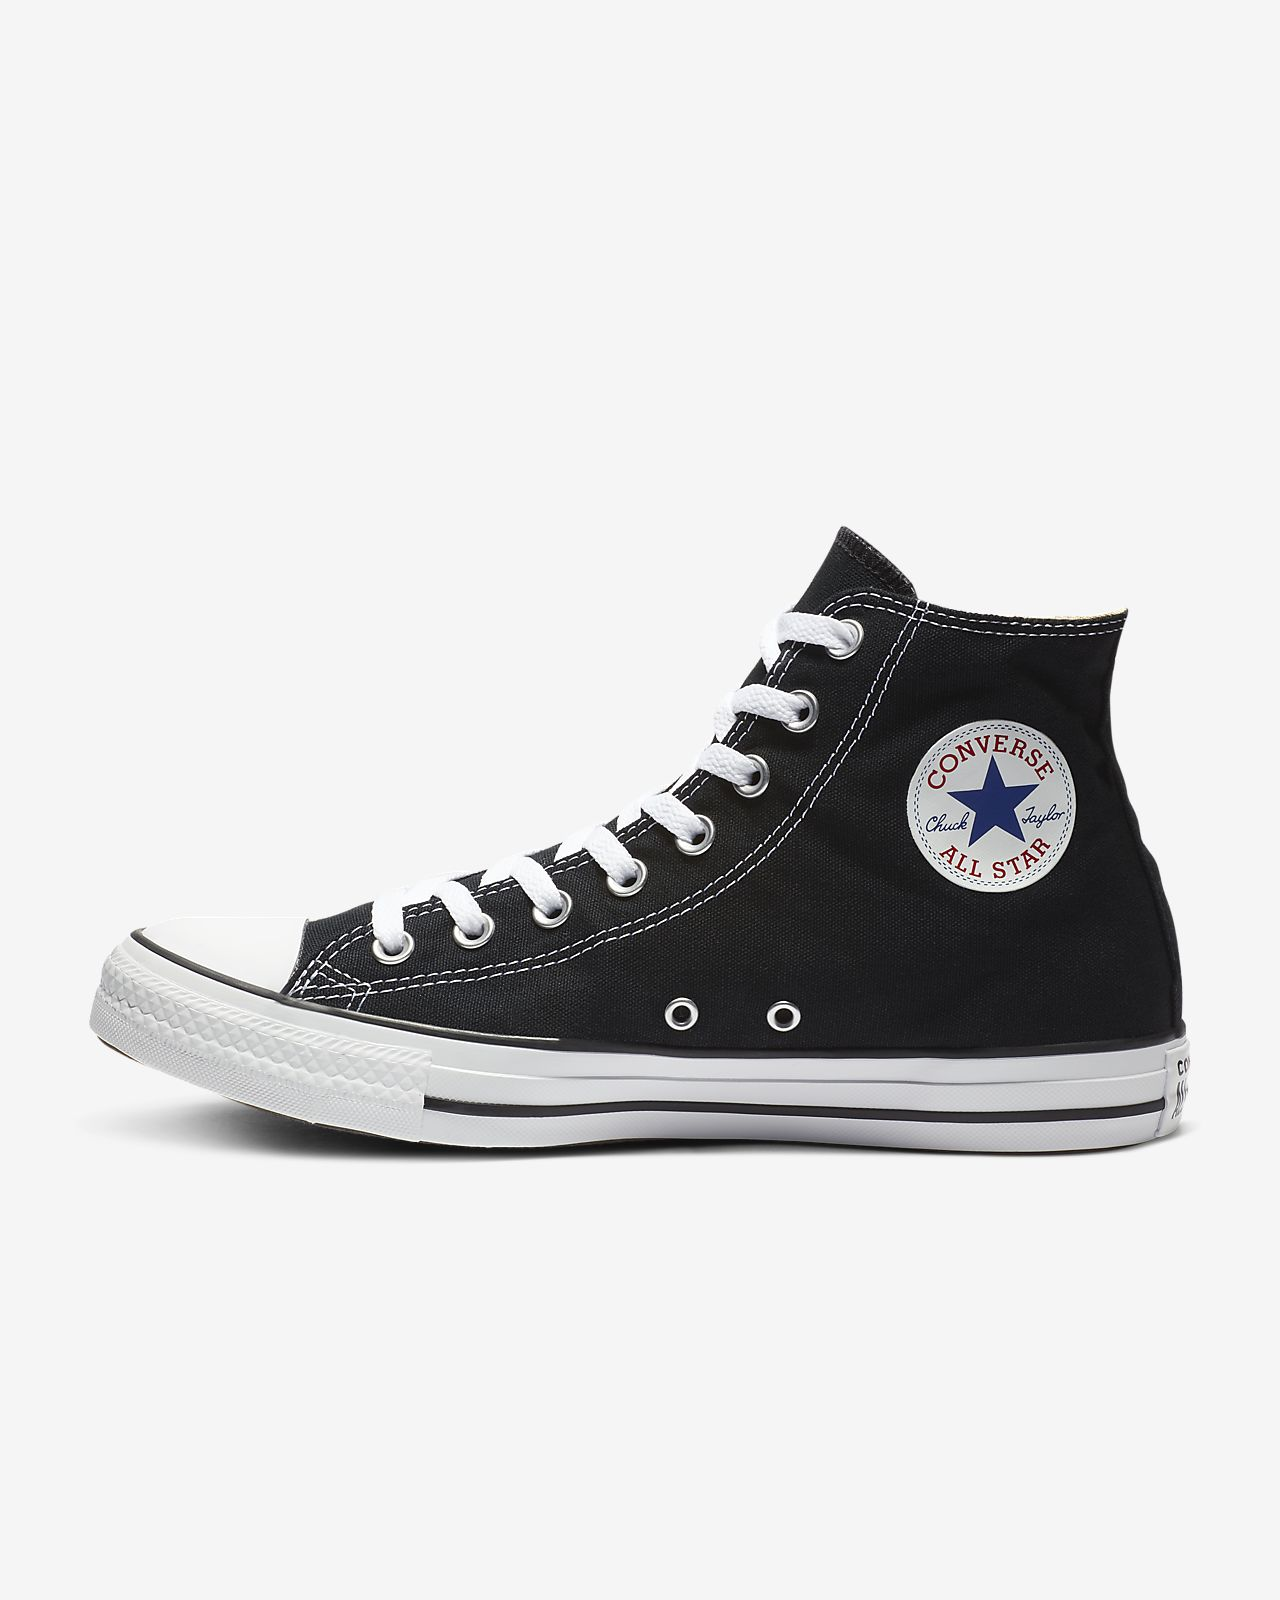 2ef01ff91ad66a Converse Chuck Taylor All Star High Top Unisex Shoe. Nike.com